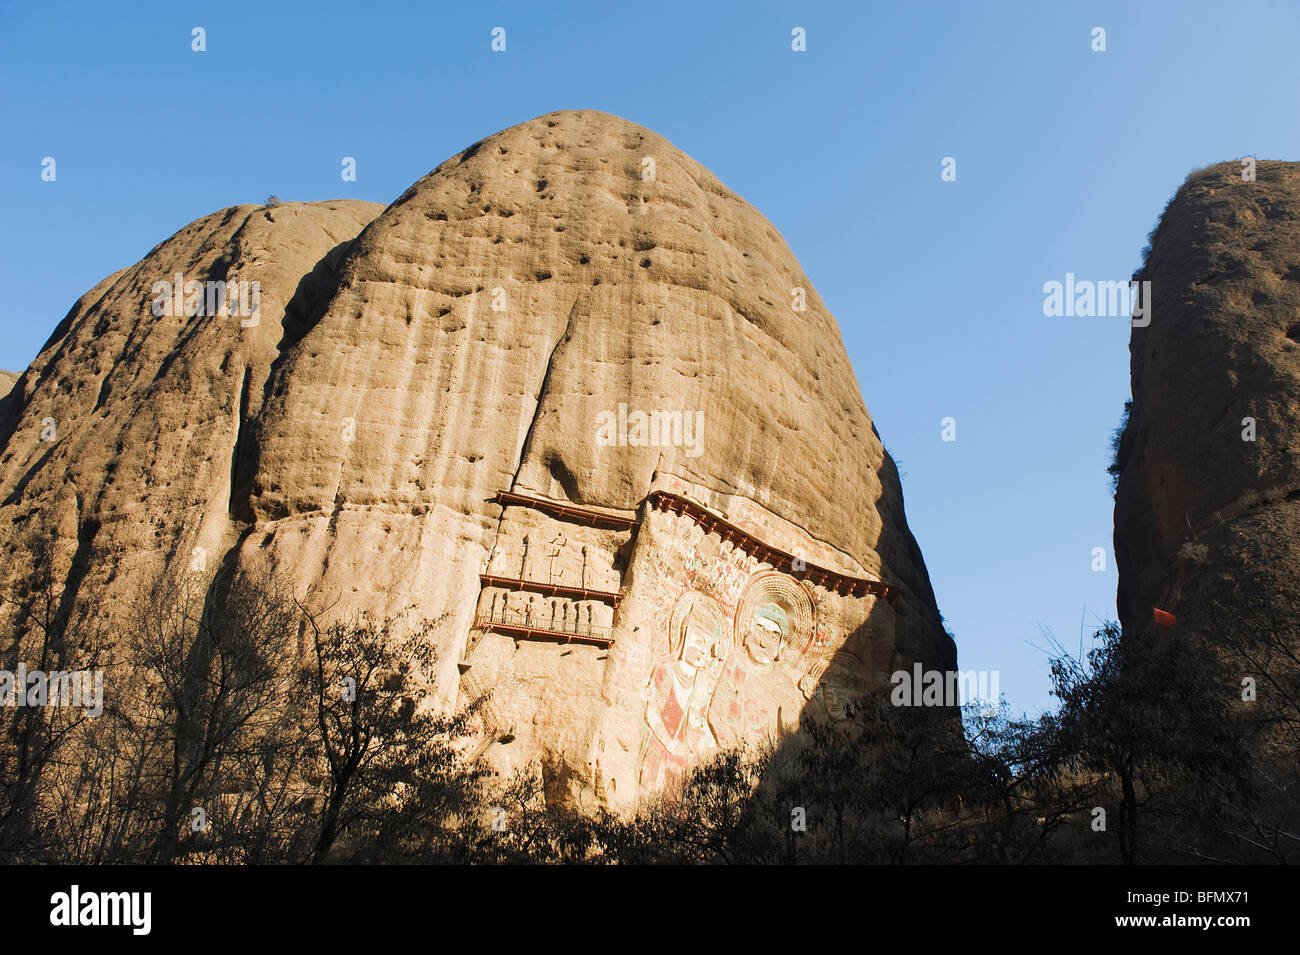 China, Gansu Province, Shuilian Dong Water Curtain Cave, Sakyamuni rock sculptures Lashao temple, Northern Wei dynasty - Stock Image